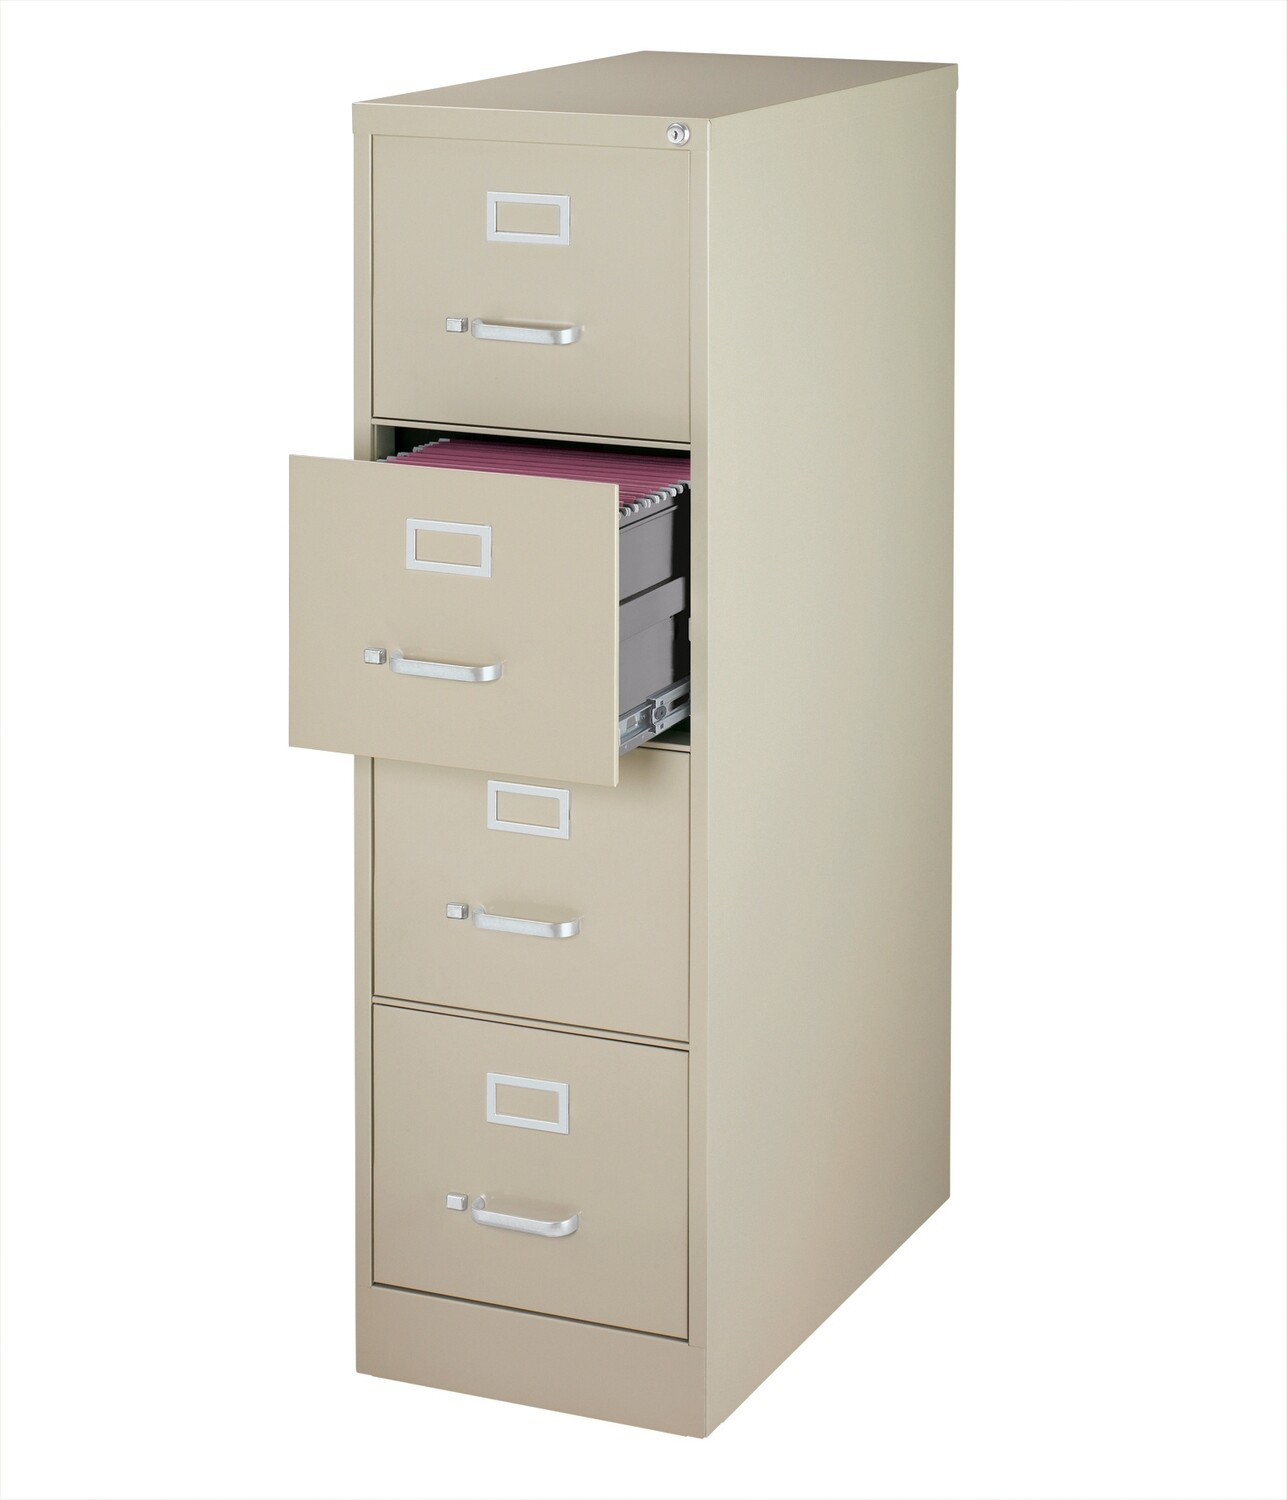 Vertical File Cabinet, 4-Drawer, LETTER, Putty